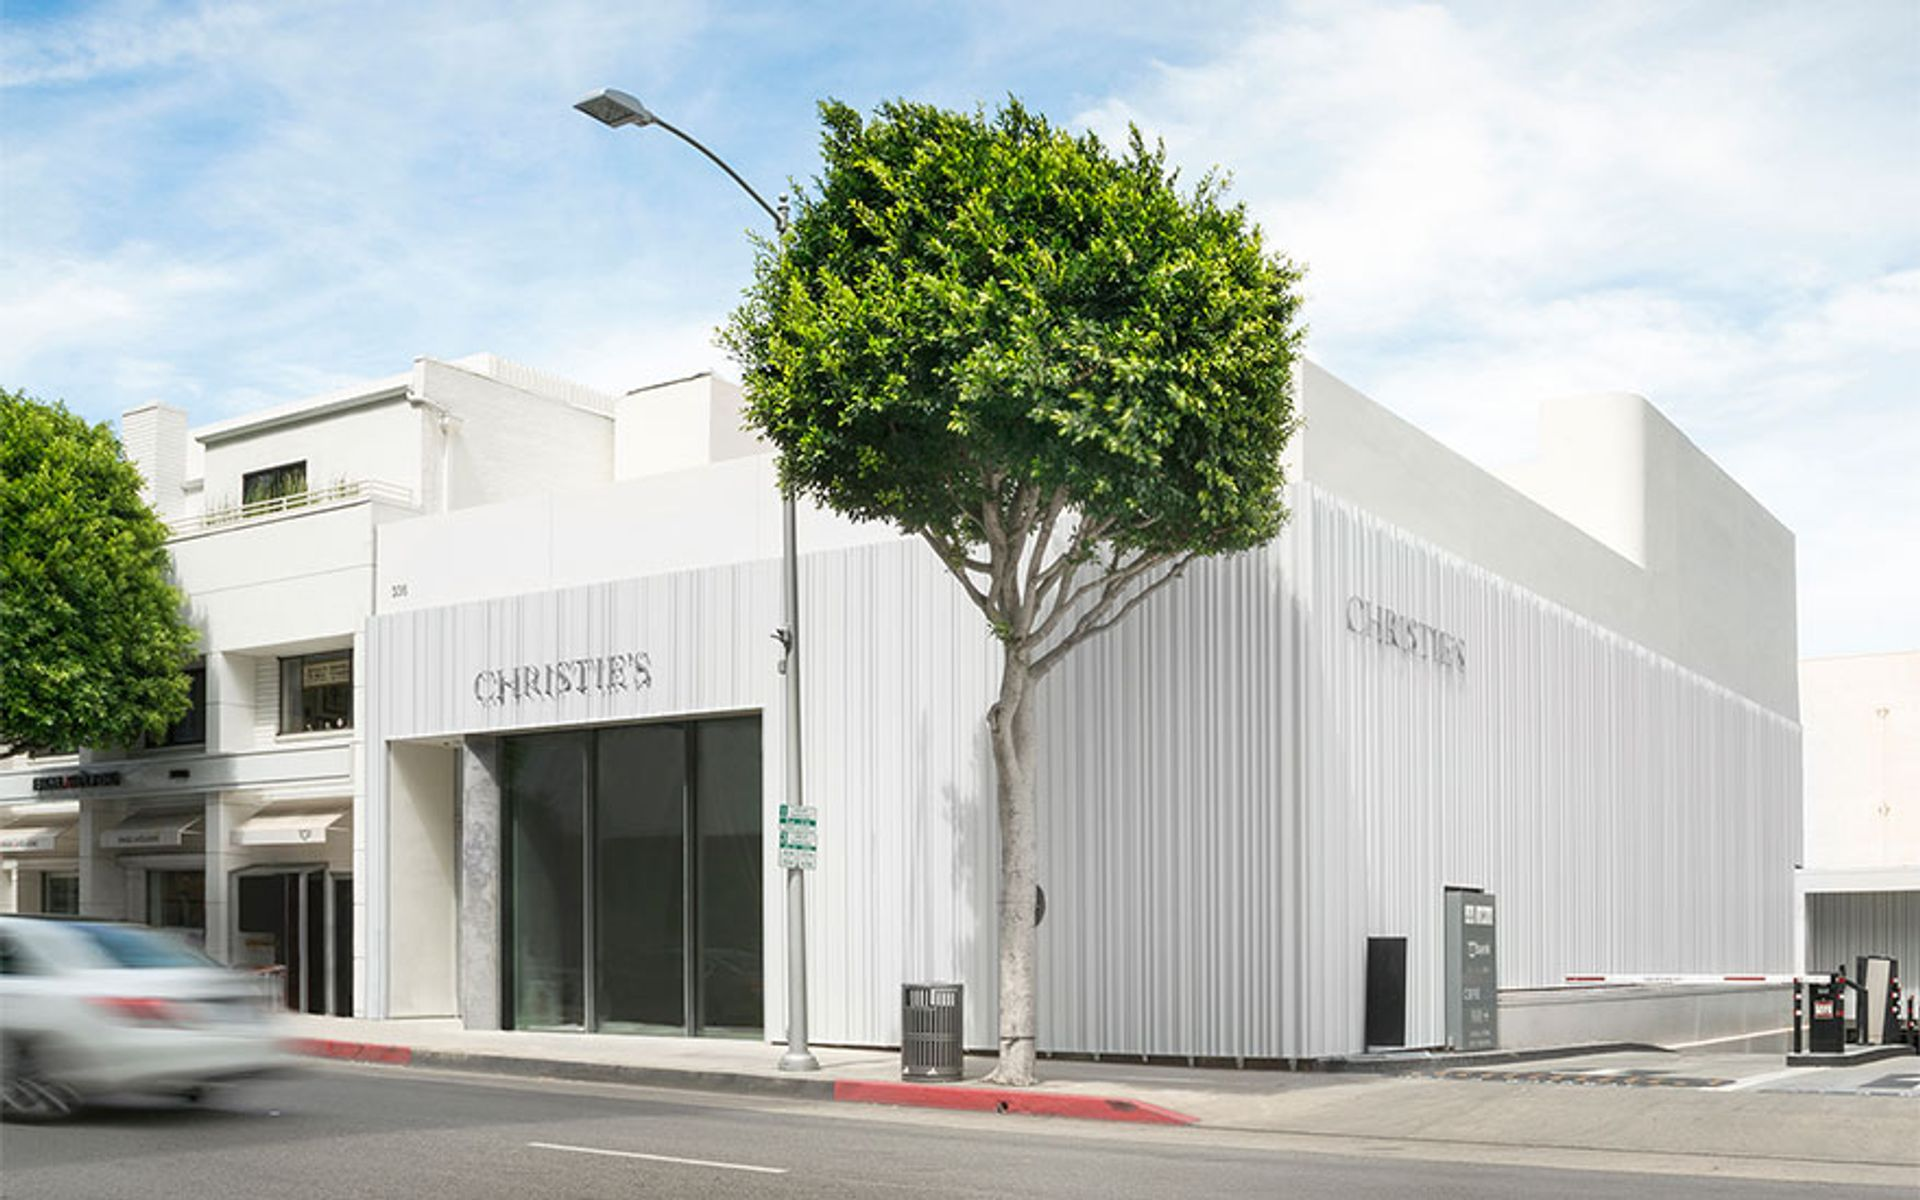 The ruling could open the door for Christie's and Sotheby's to hold more contemporary auctions in Los Angeles